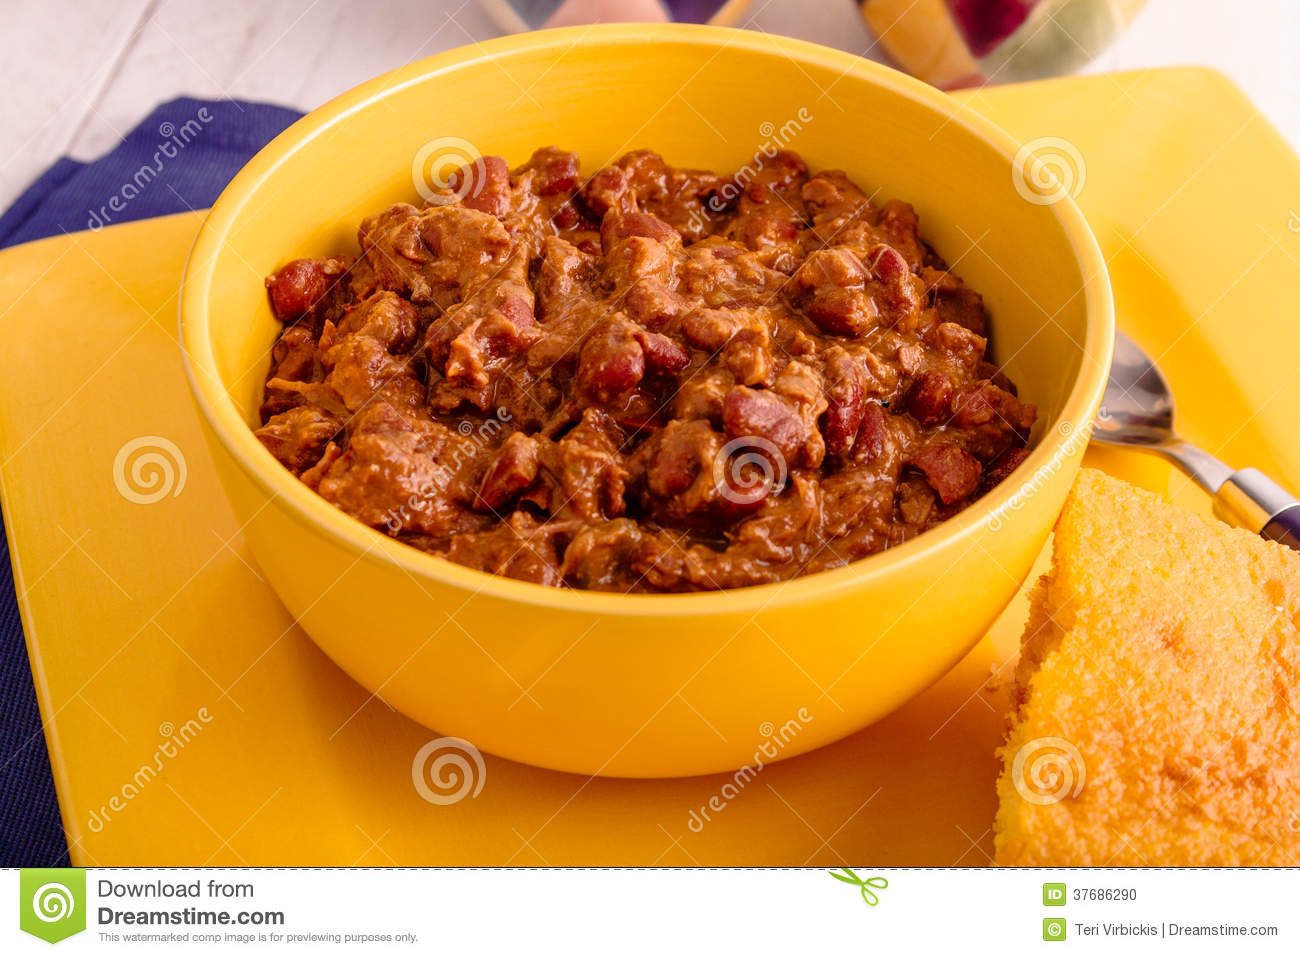 Chili With Red Kidney Beans In Yellow Bowl With Cornbread On Plate